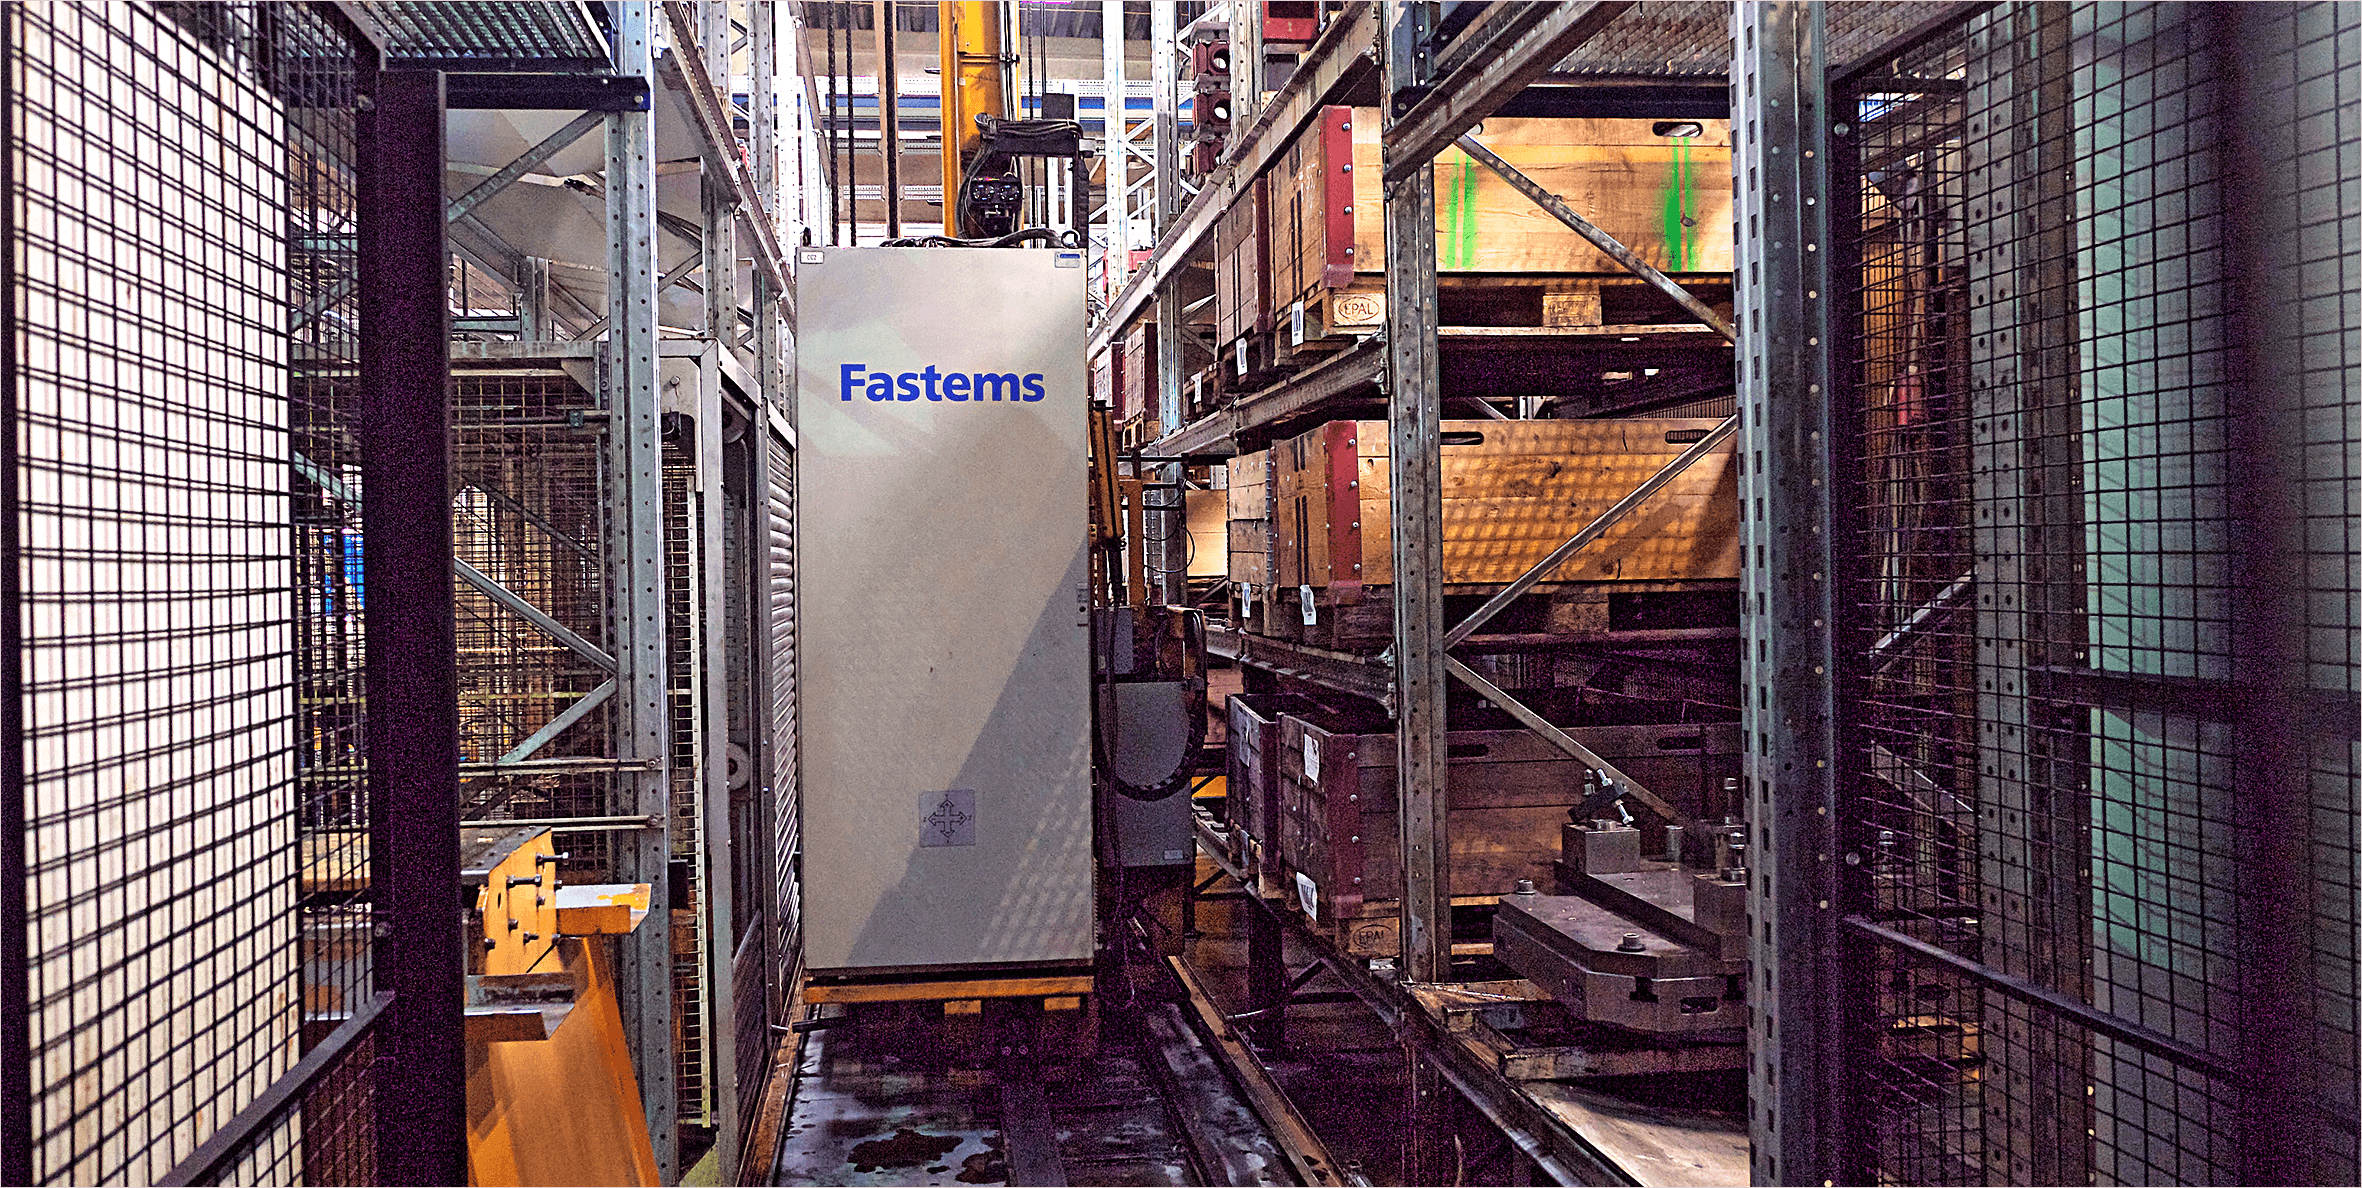 Flexible Manufacturing System for pallet automation and increased productivity